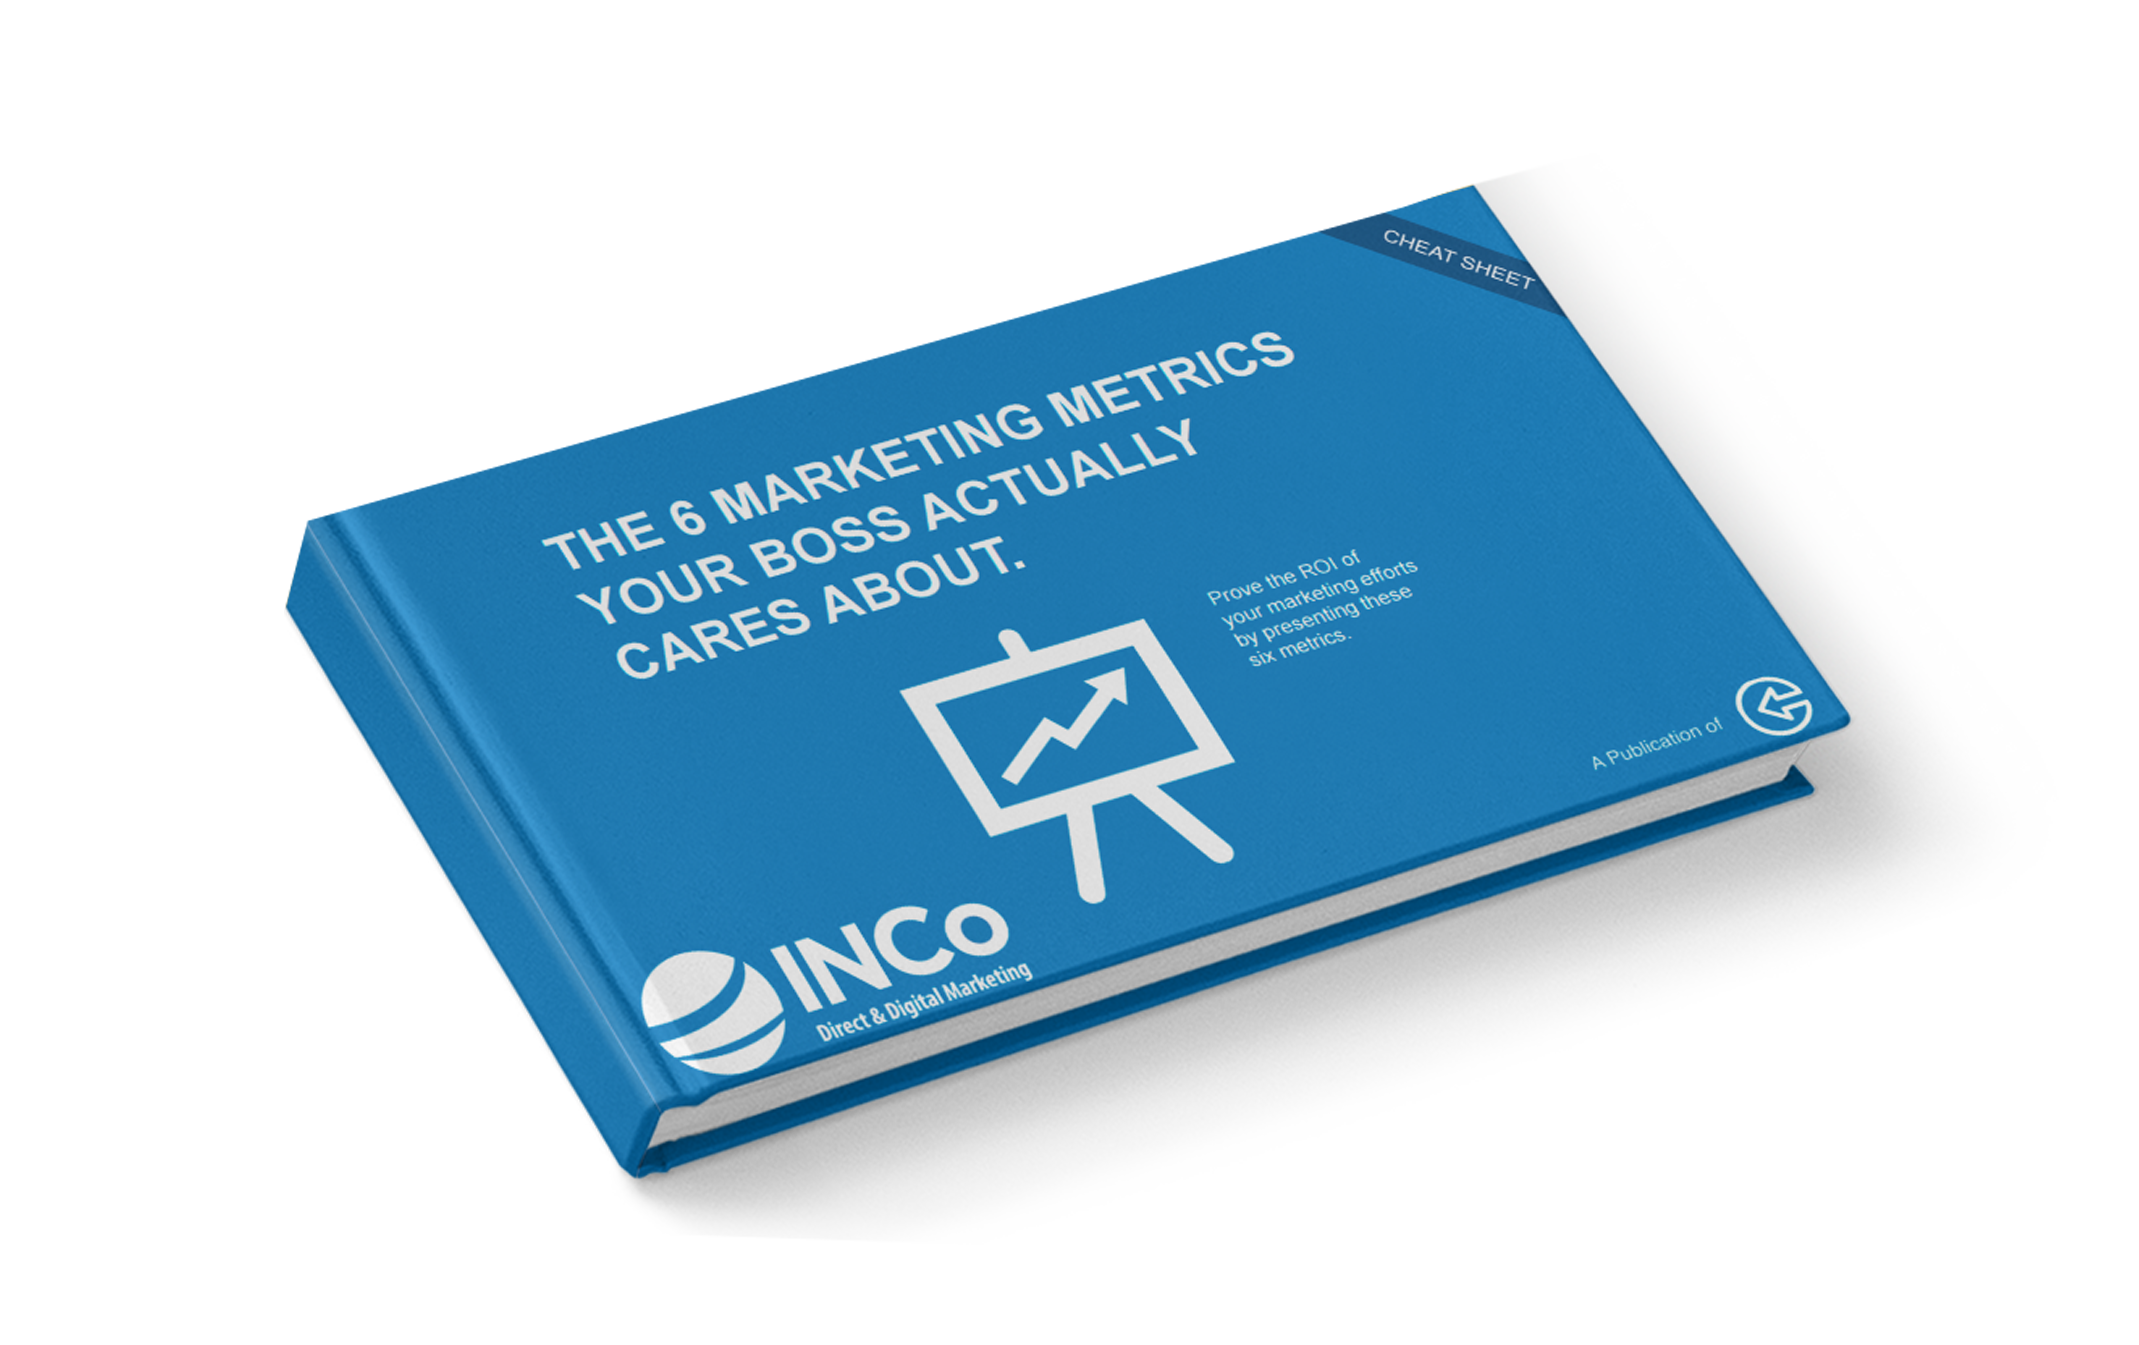 eBook-Marketing-Metrics